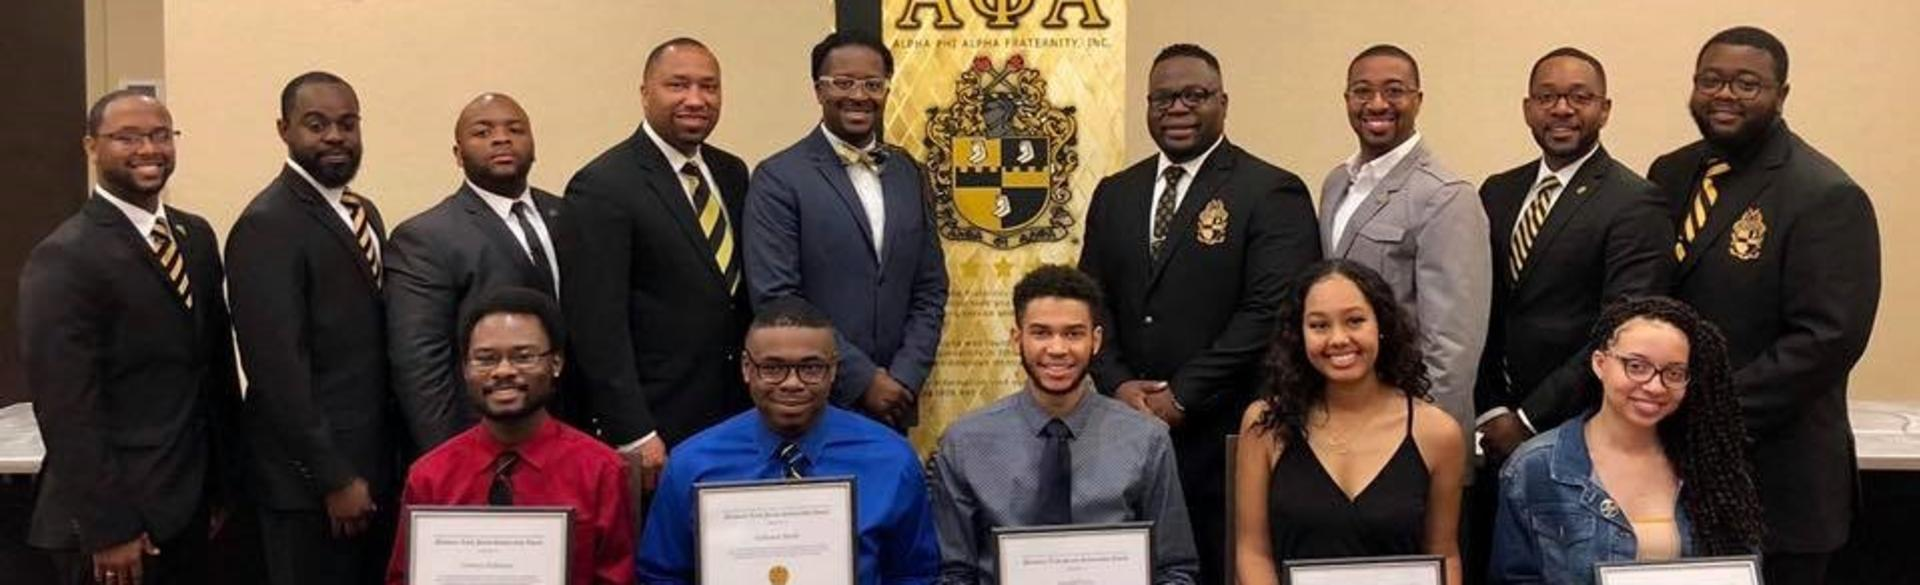 Alpha Phi Alpha Fraternity, Inc.- Eta Nu Lambda Chapter